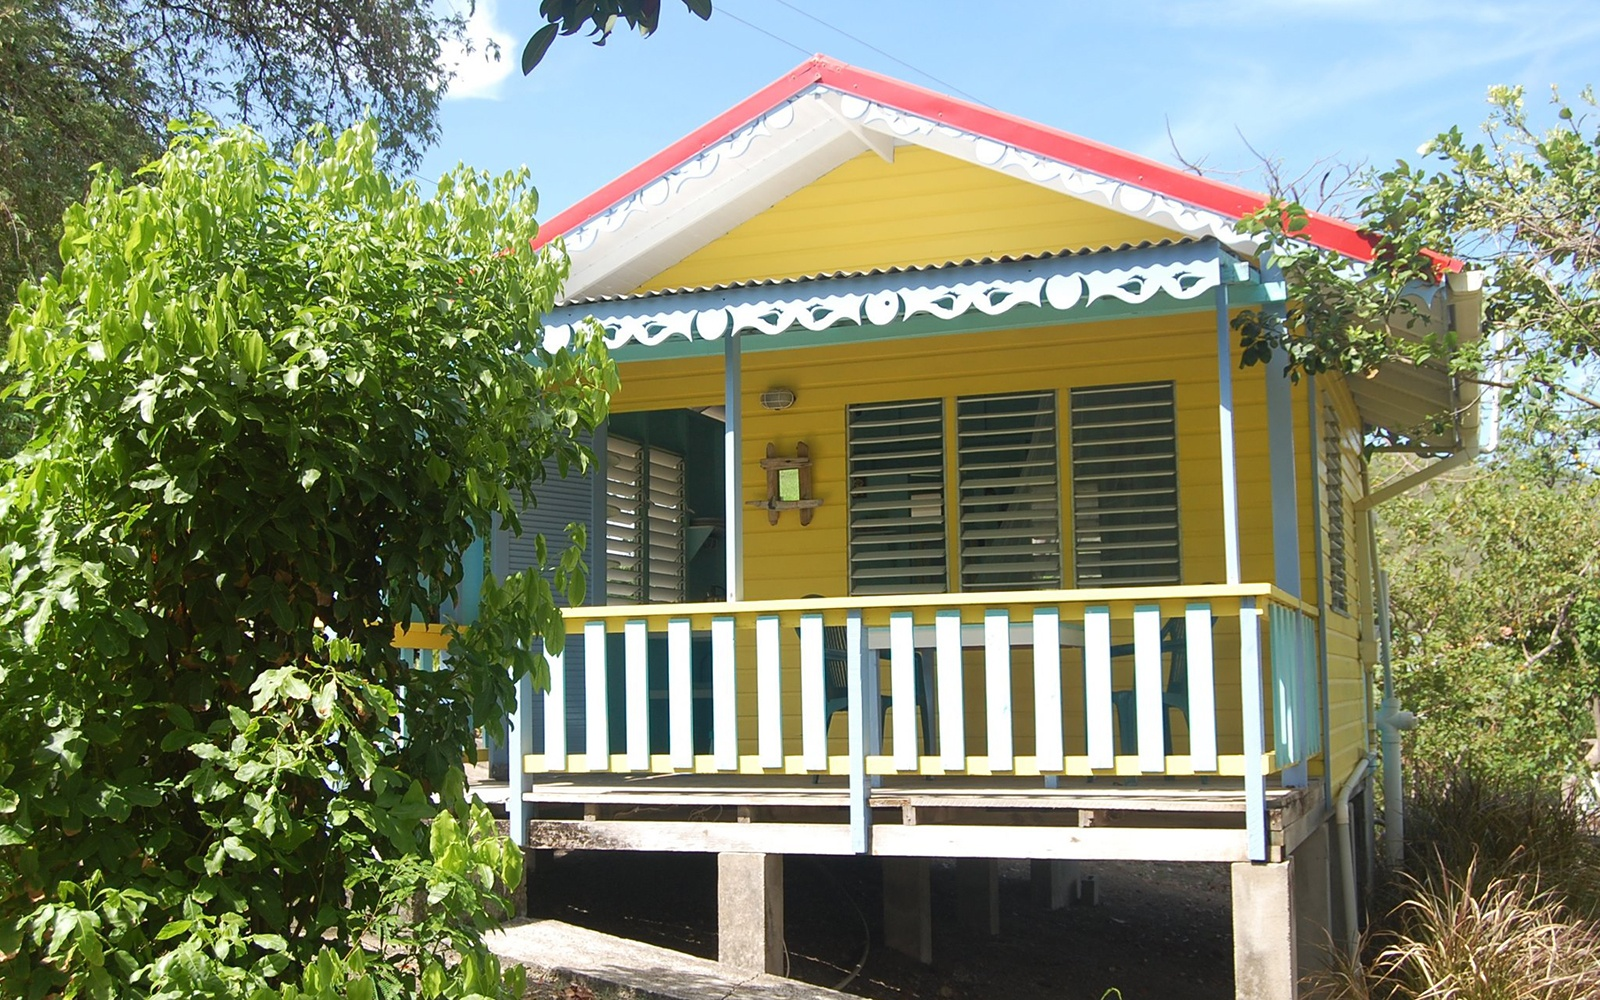 Bayaleau Point Cottages, Carriacou, Grenadines